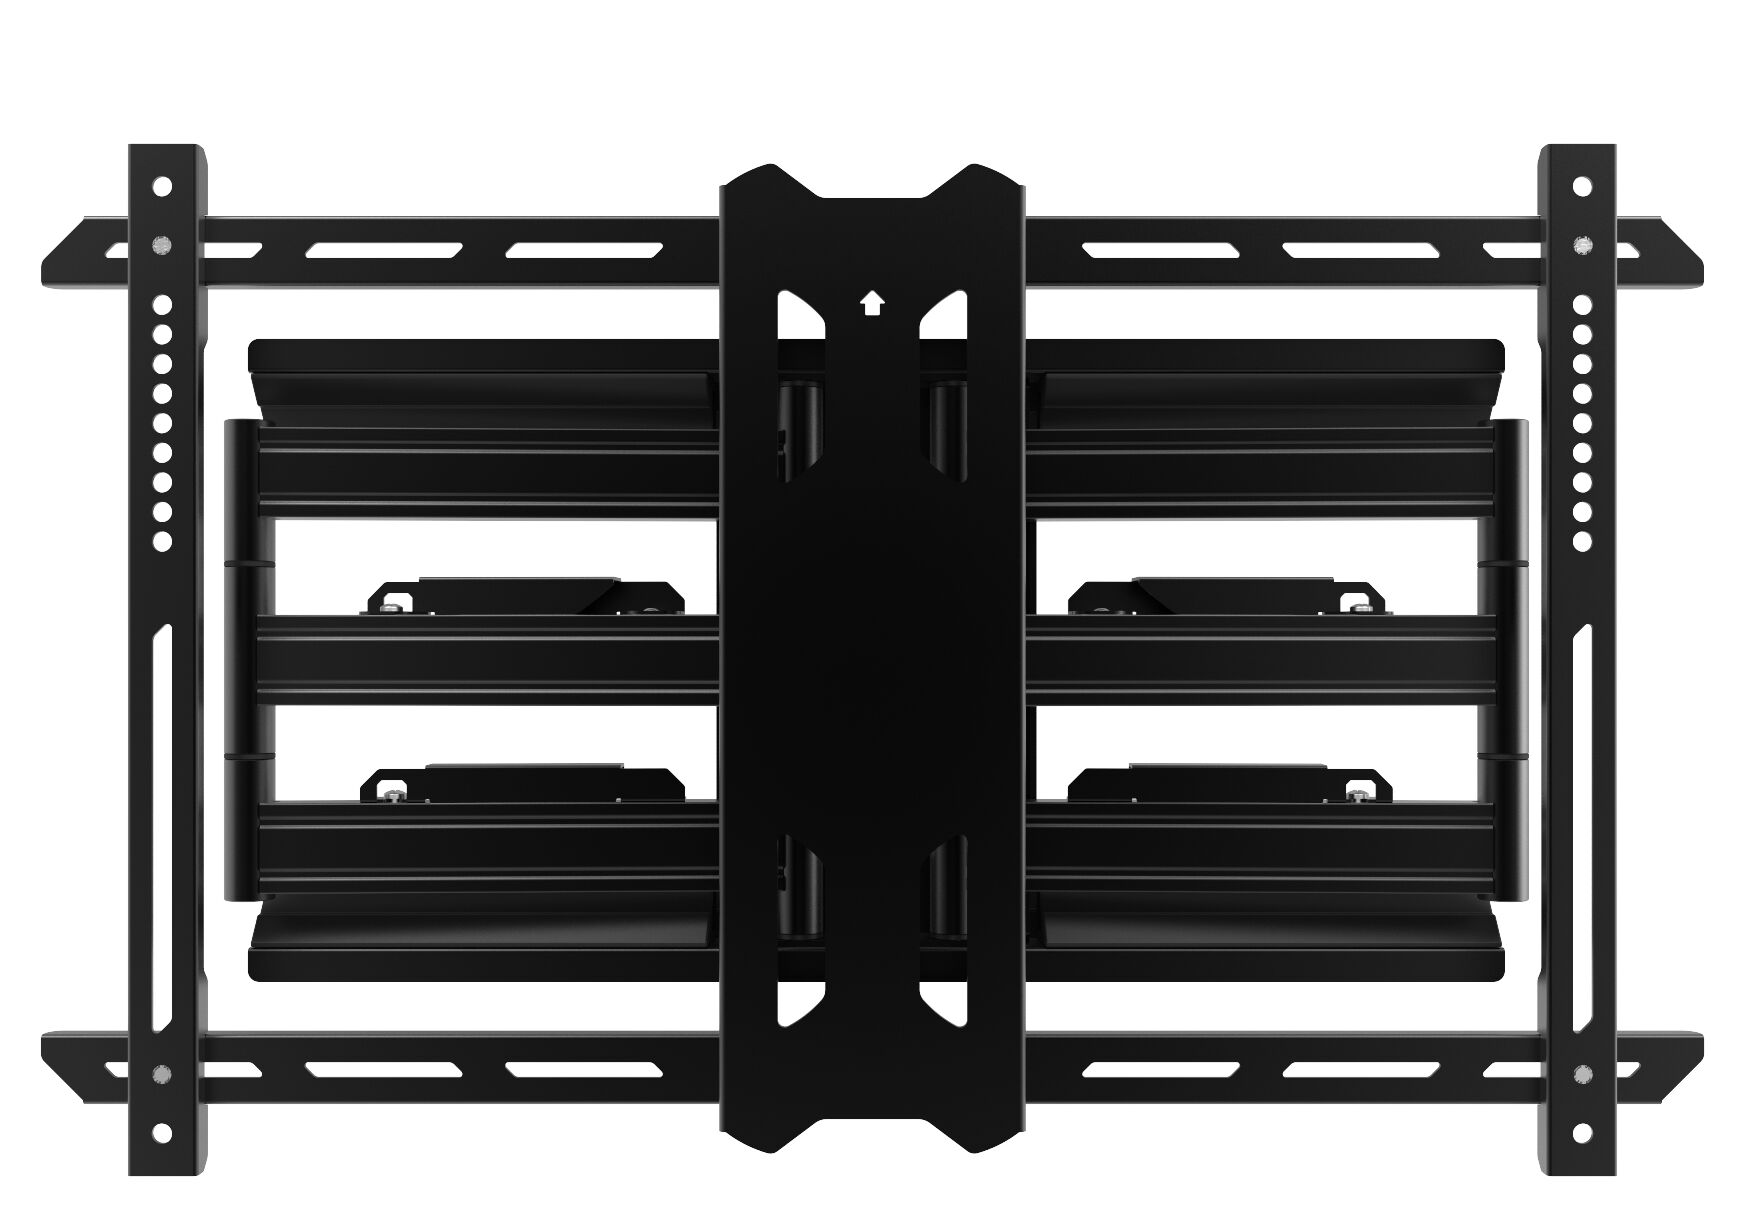 Designed for patios, decks, and balconies, the Outdoor Full Motion Wall Mount Greater than 50